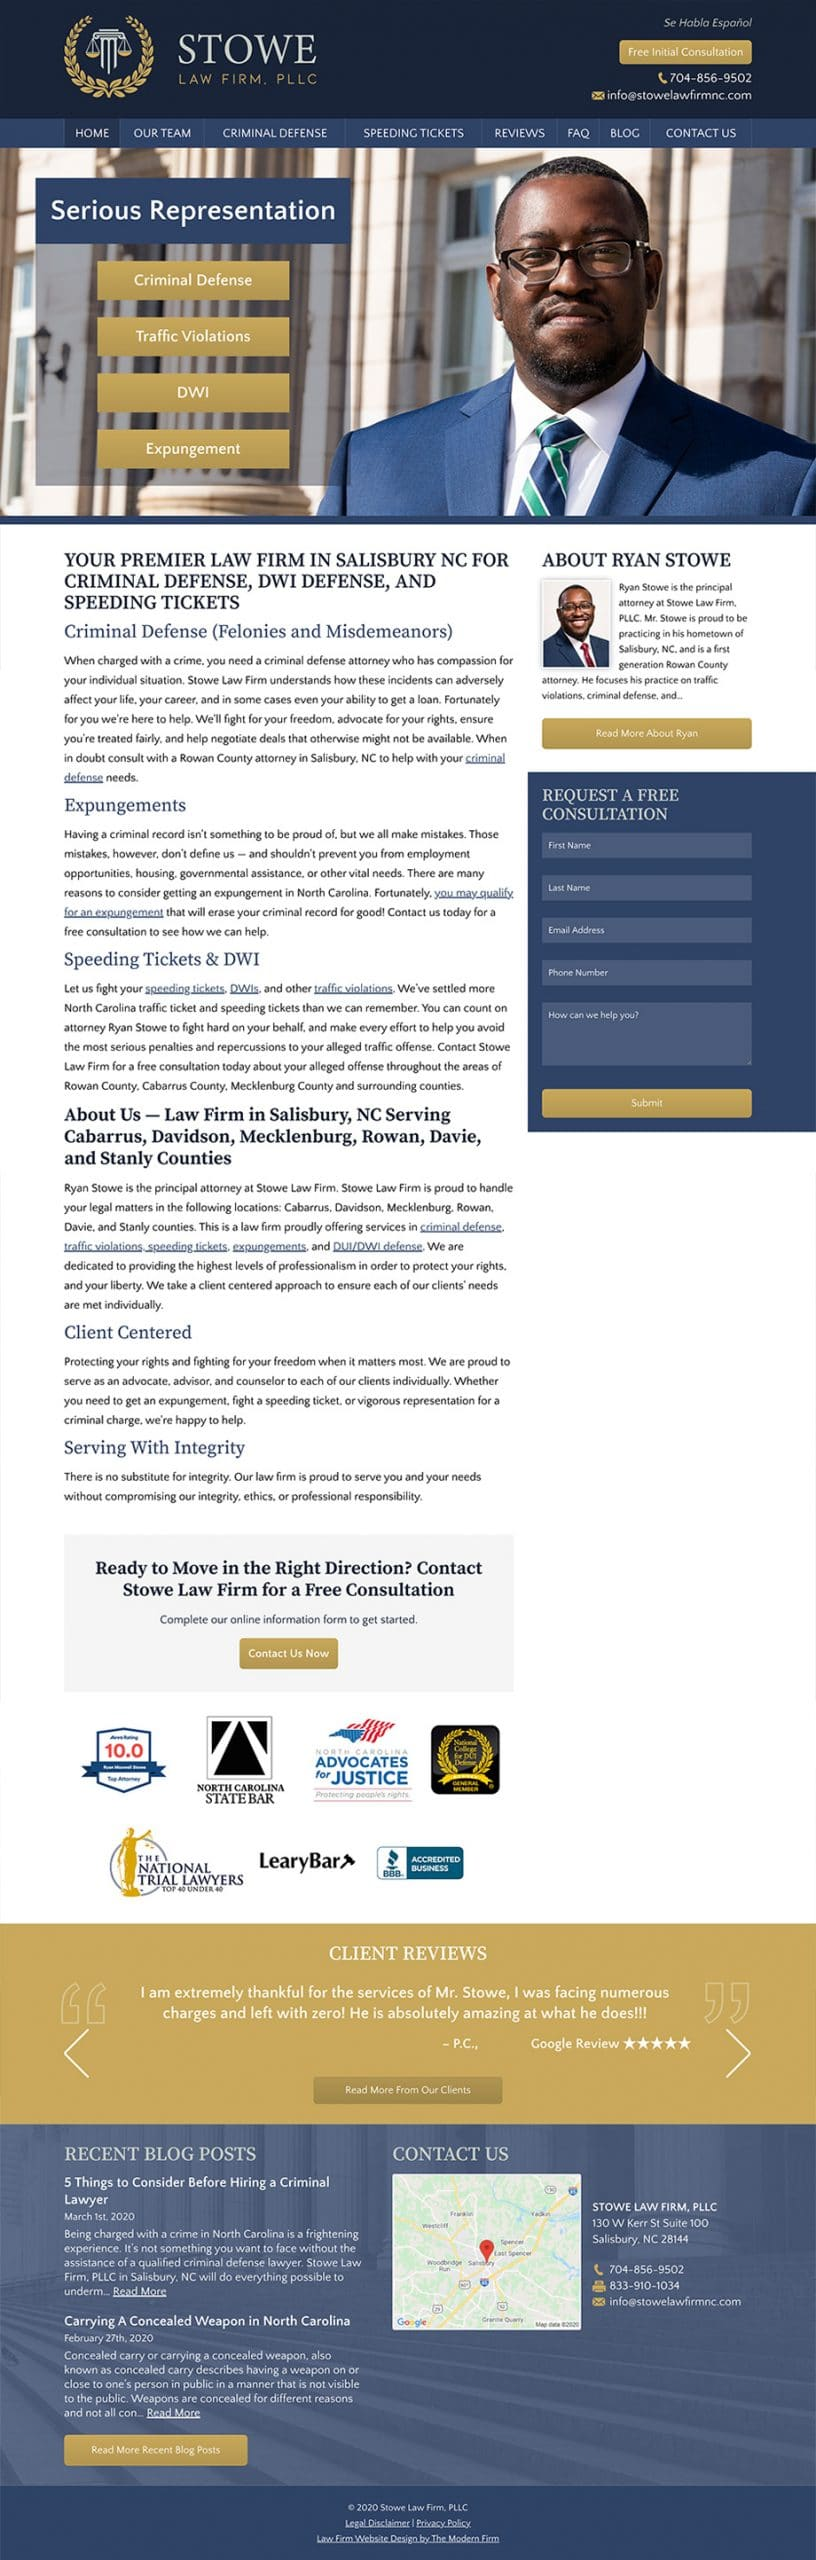 Law Firm Website Design for Stowe Law Firm, PLLC